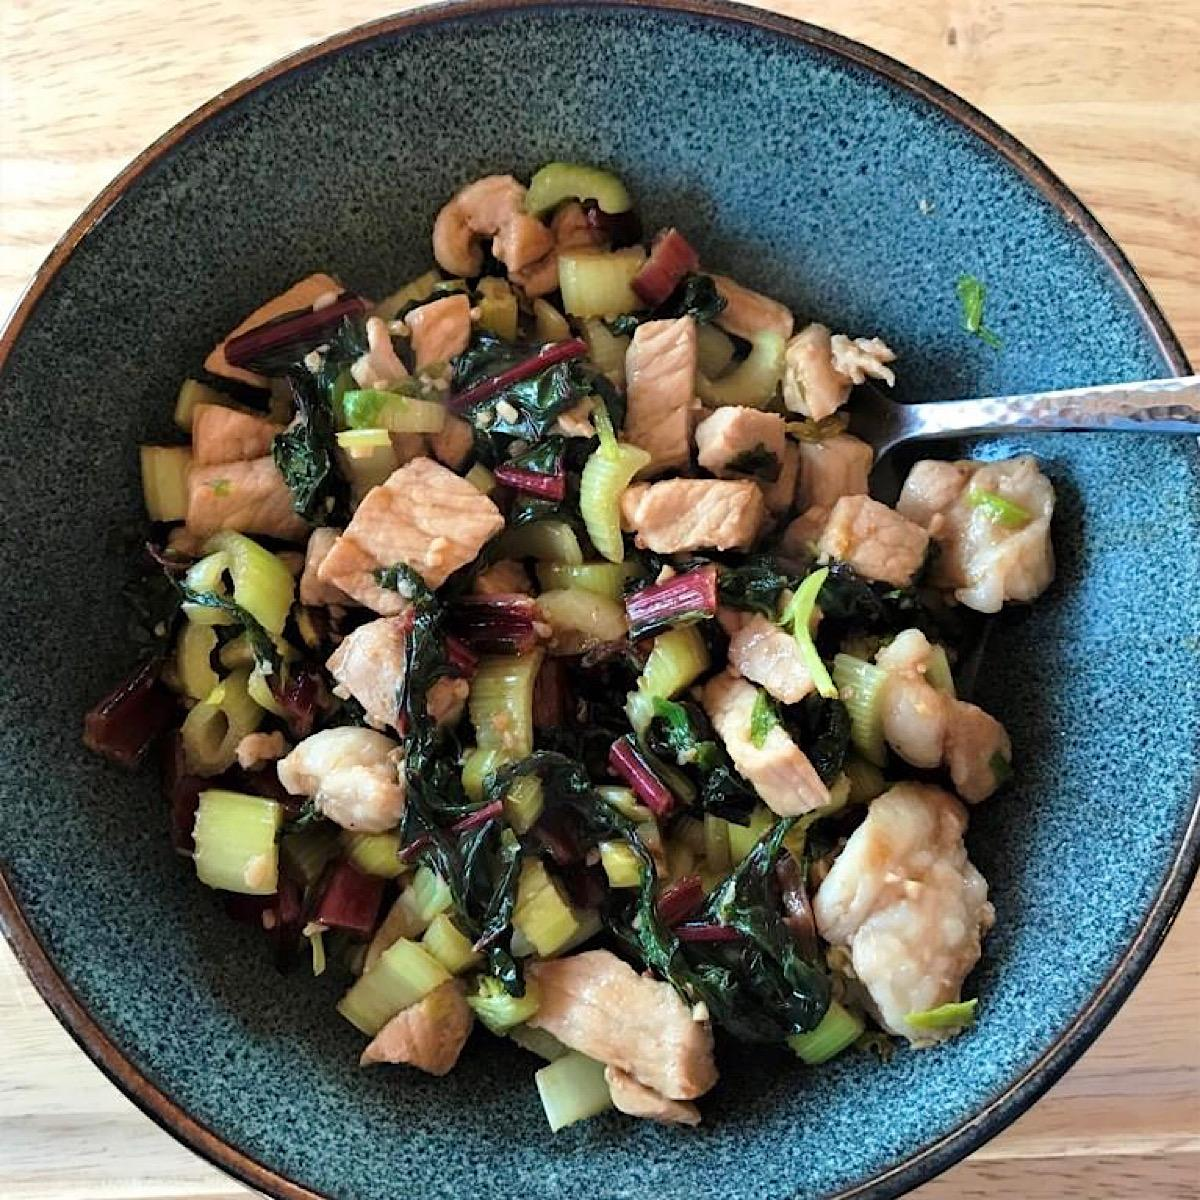 Low carb stir fry made with pork and swiss chard